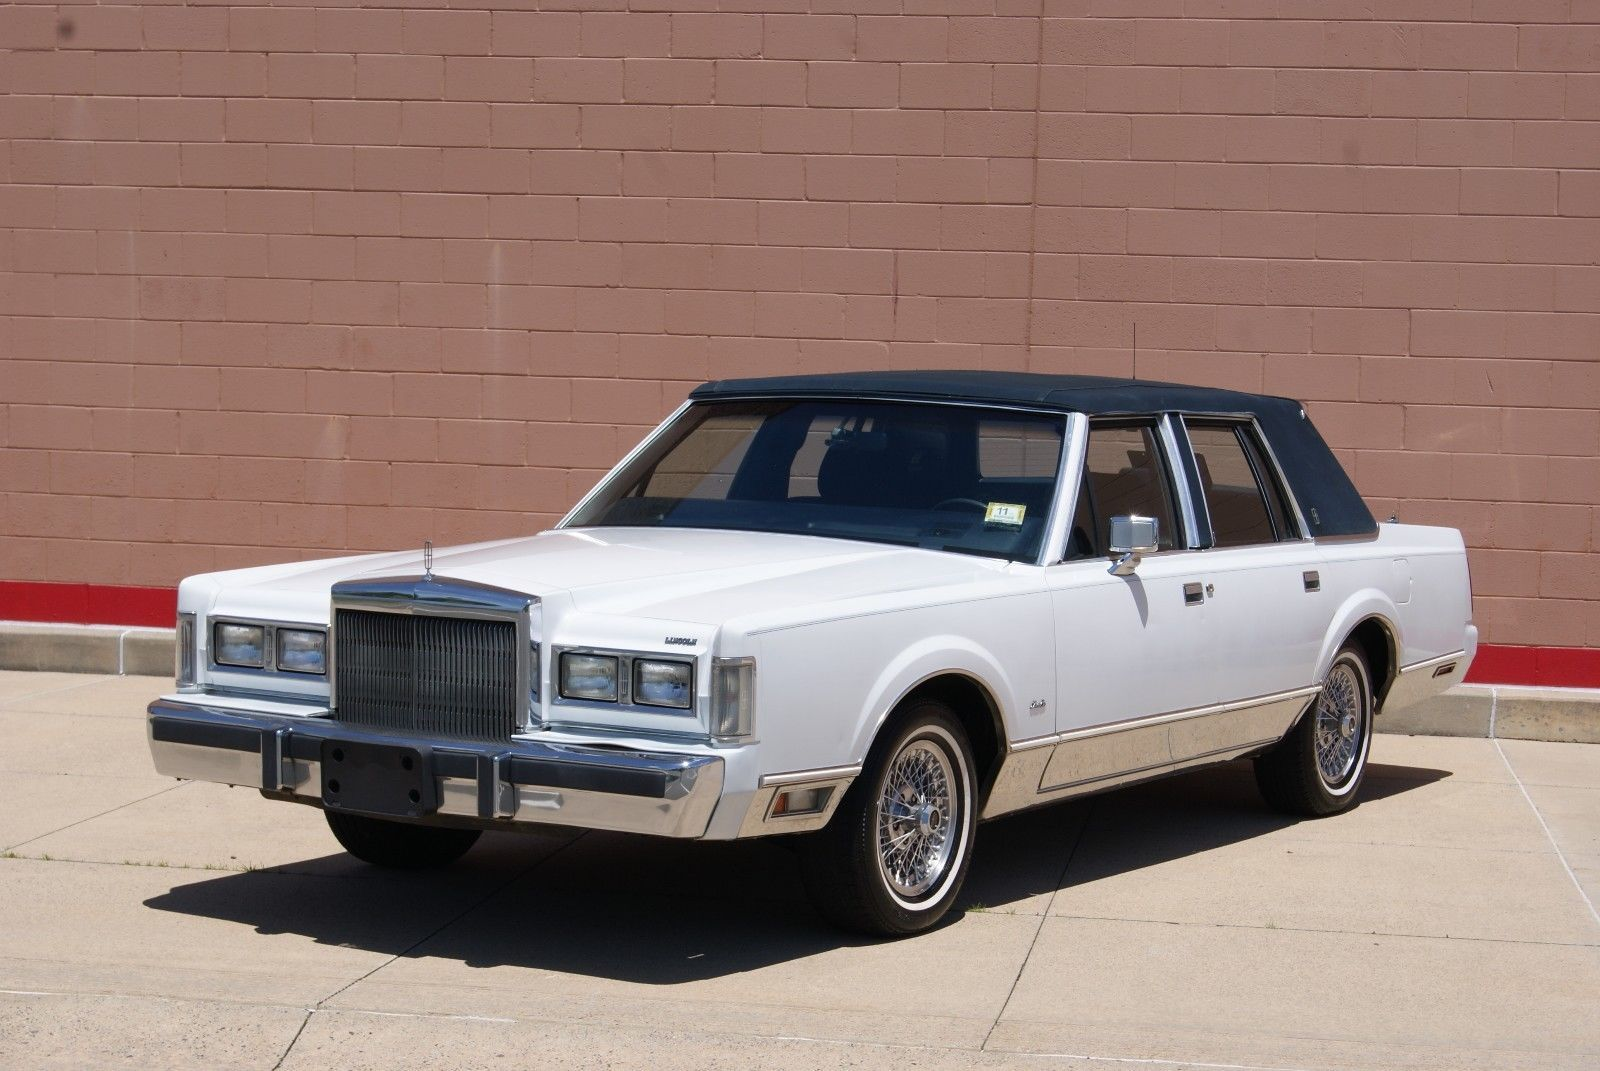 Ebay 1988 Lincoln Town Car Signature Series 1988 Lincoln Town Car Only 19 000 Original Miles 1 Owner Classic Classic Lincoln Town Car Car Lincoln Cars